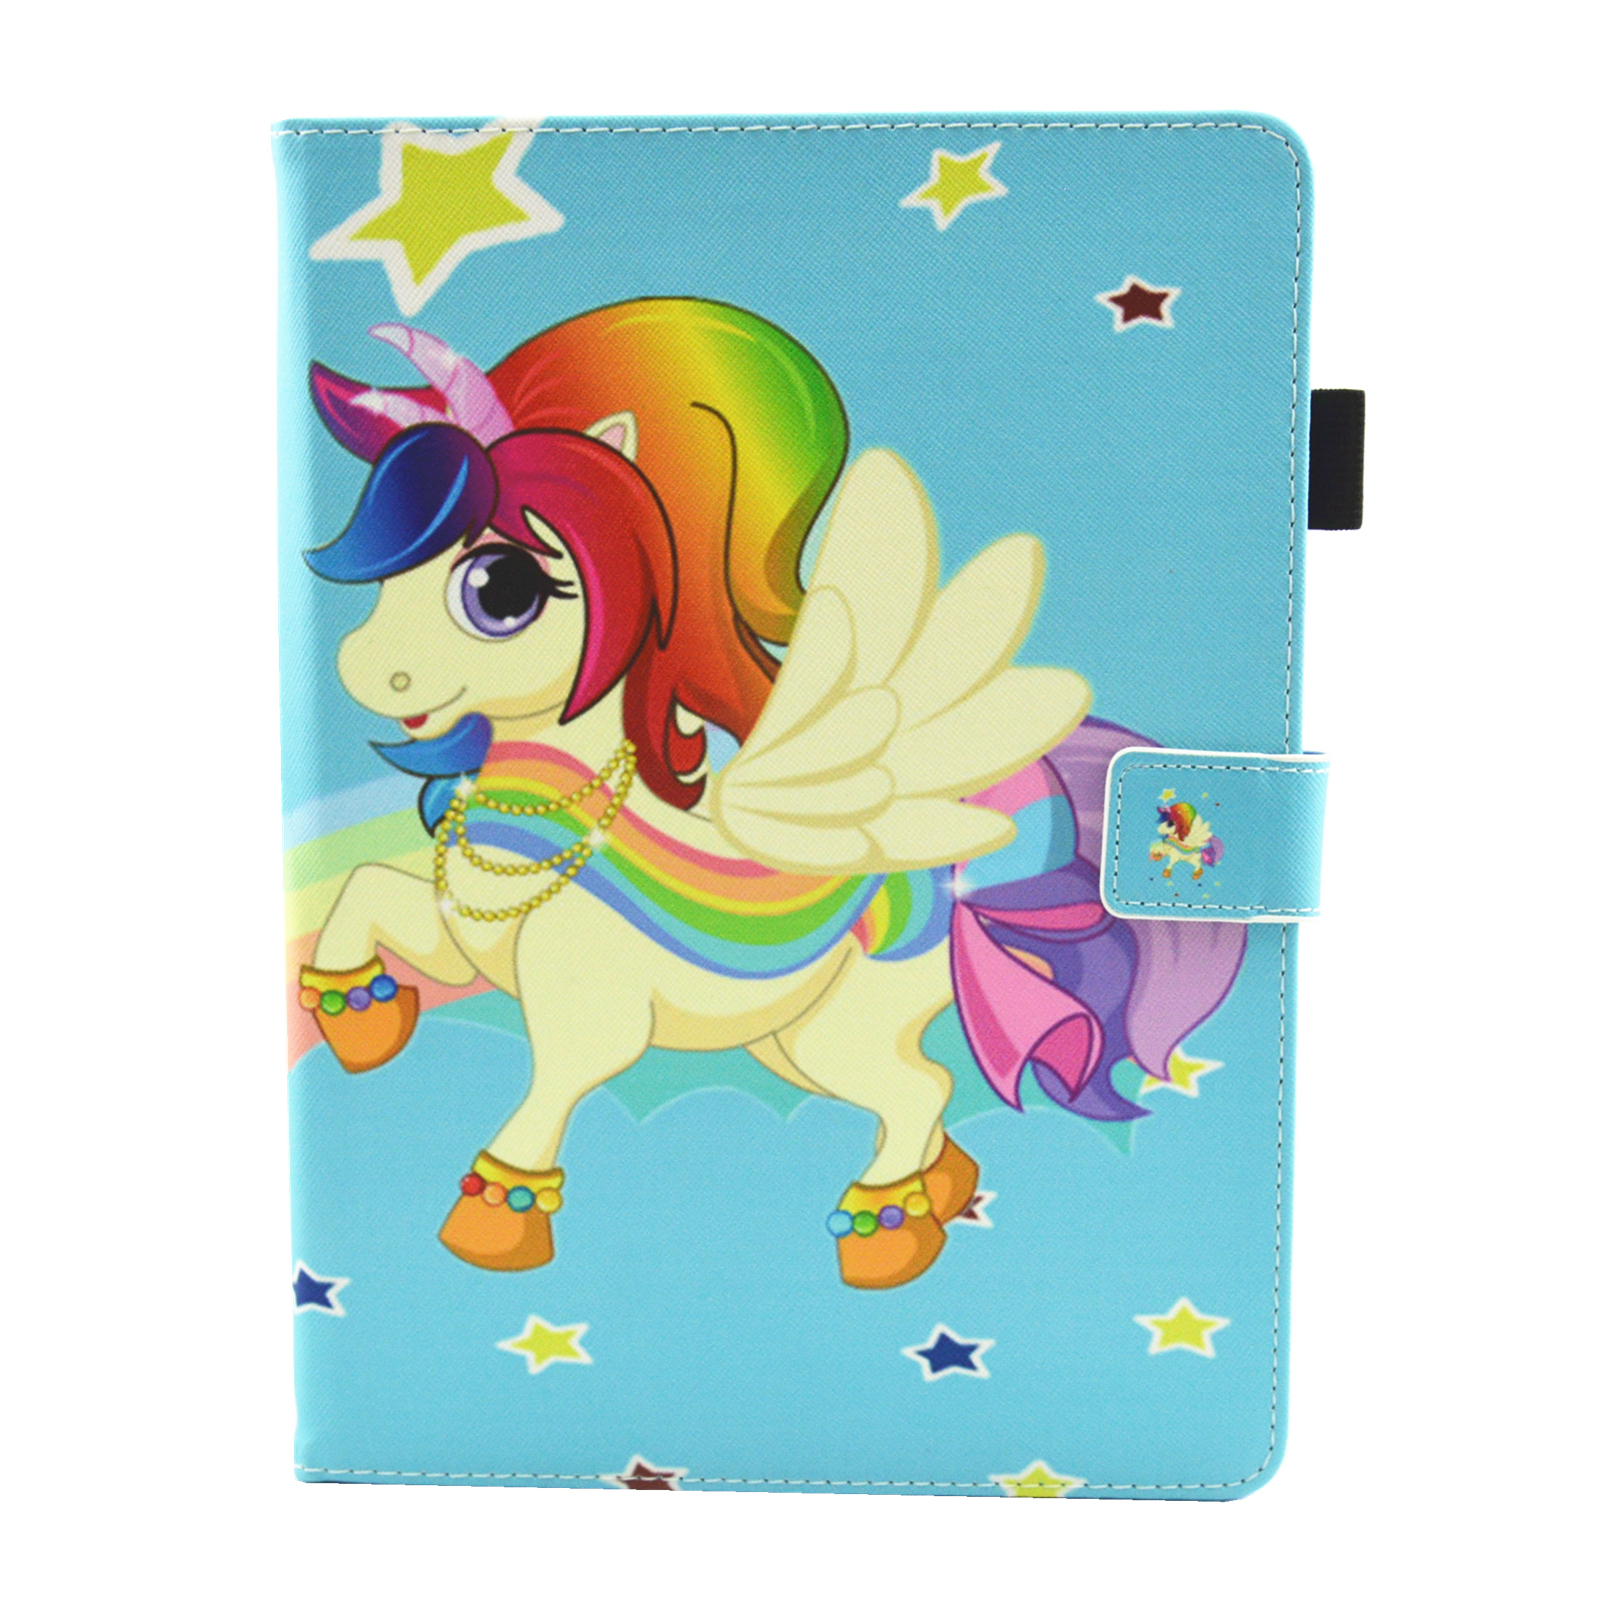 as photo Clear Cute Case For iPad 10 2 Case 2019 Tablet Cover For iPad 10 2 7th Generation